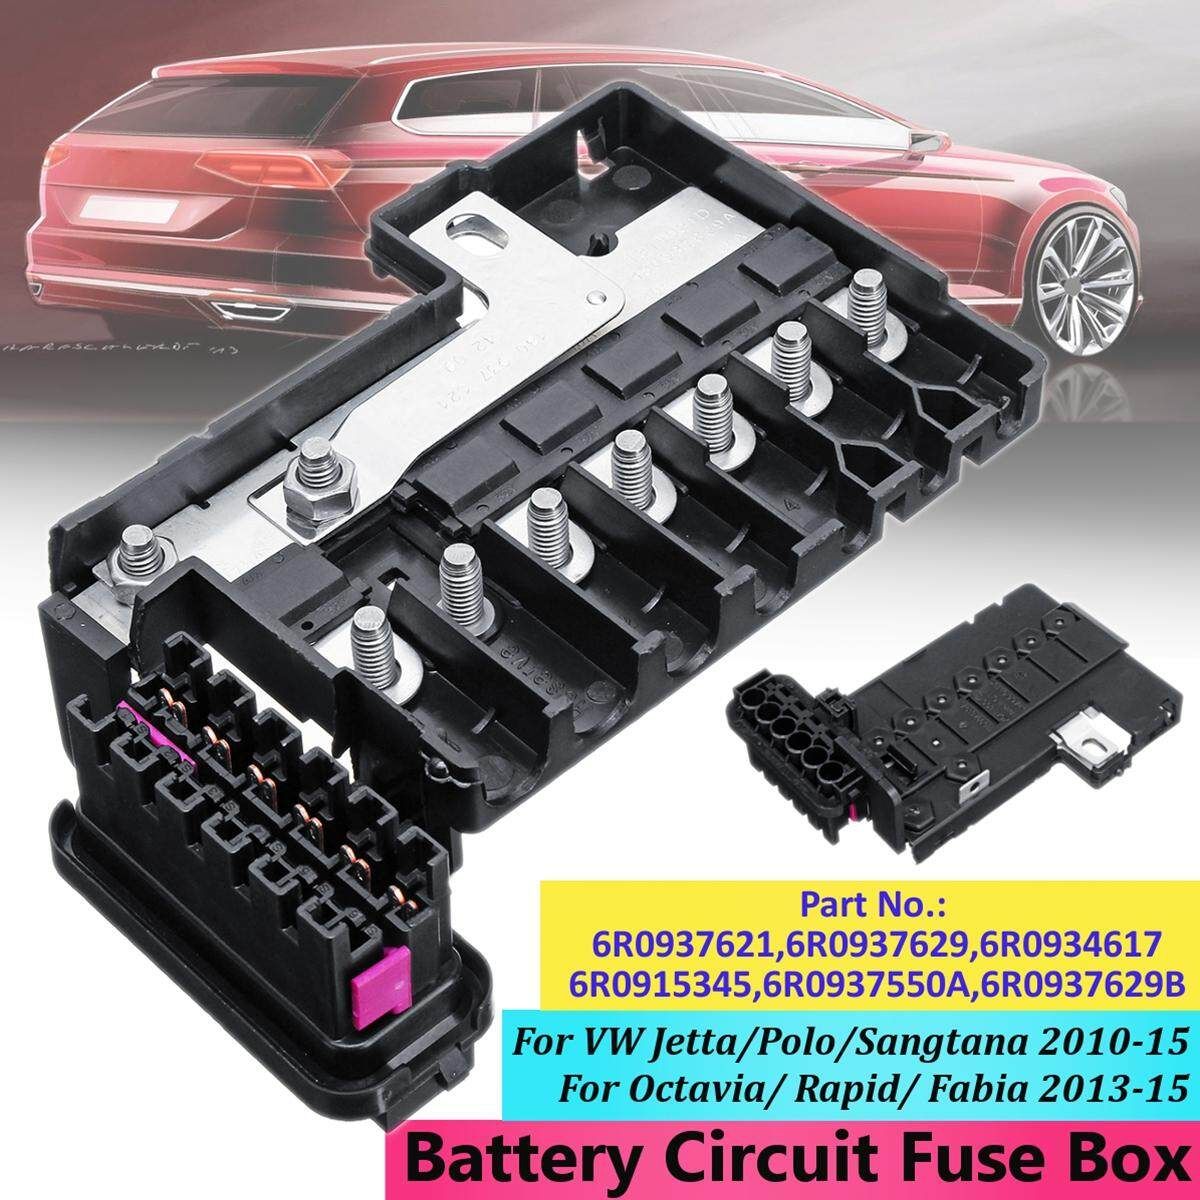 【free Shipping + Flash Deal】bat-Tery Circuit Fuse Box For Vw/ Octavia/ Rapid/ Fabia 6r0937621/6r0934617 By Audew.